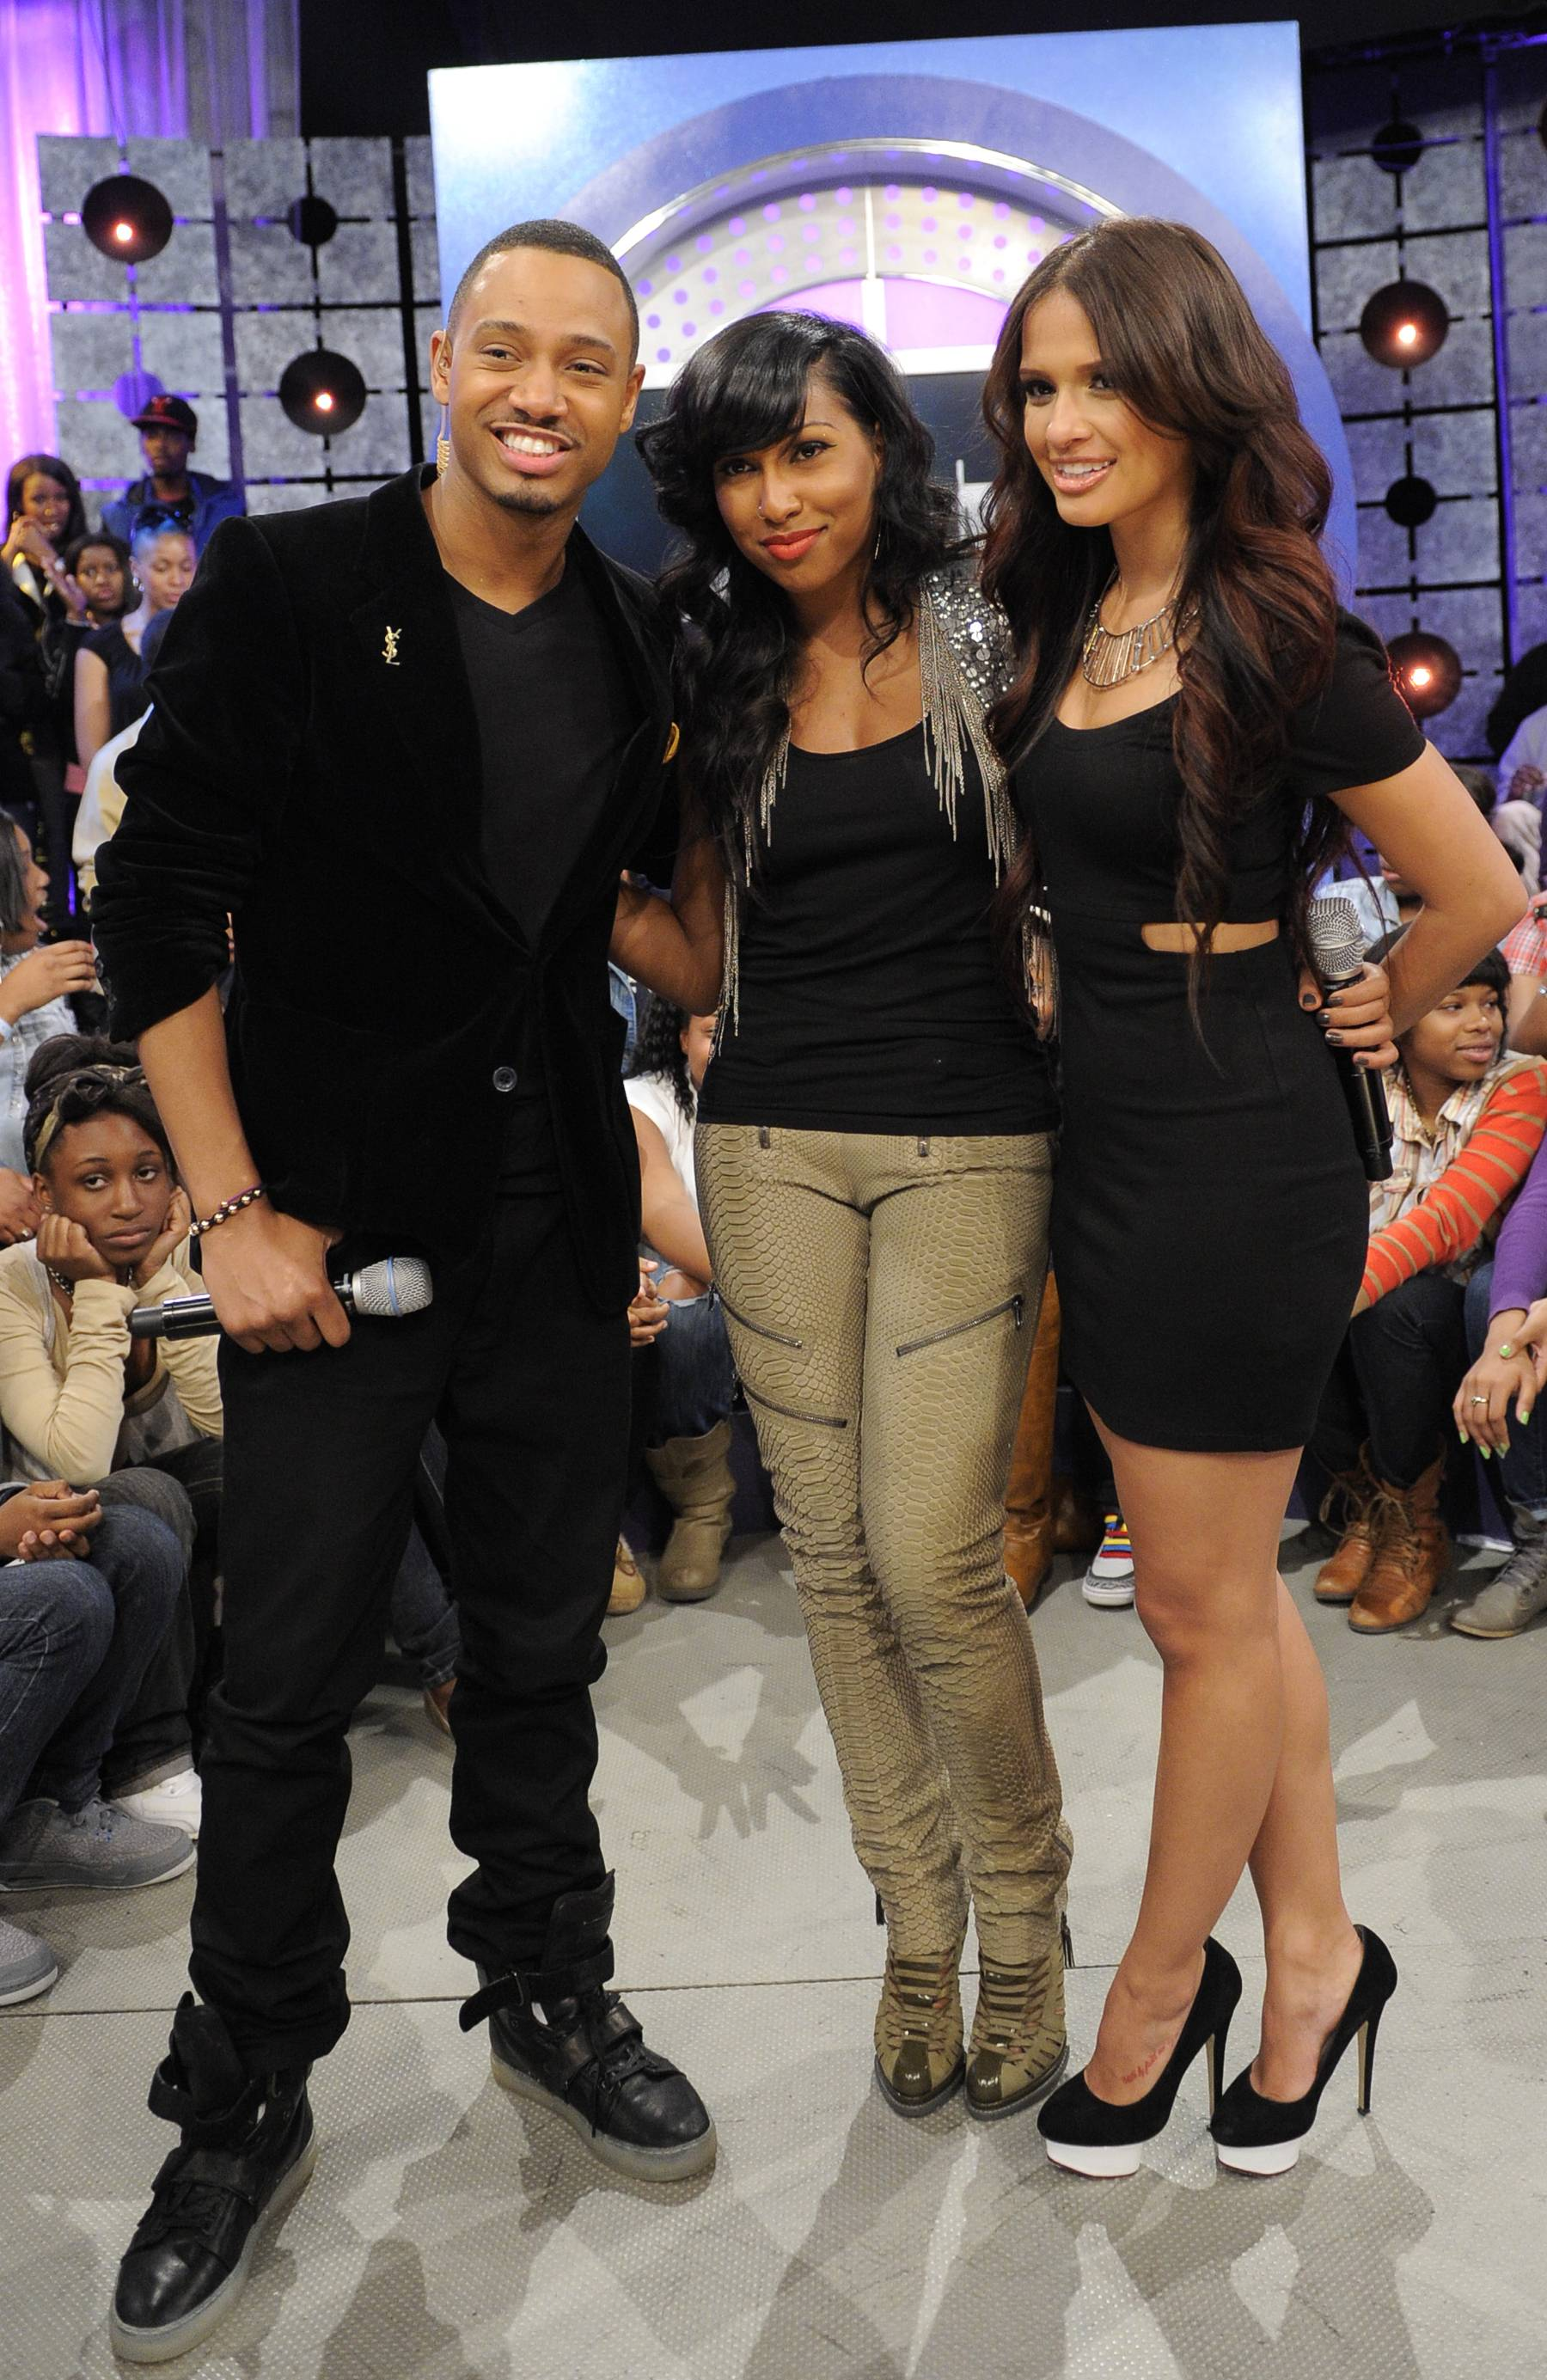 We Are Family! - Melanie Fiona with Rocsi Diaz and Terrence J at 106 & Park, May 22, 2012. (Photo: John Ricard / BET)